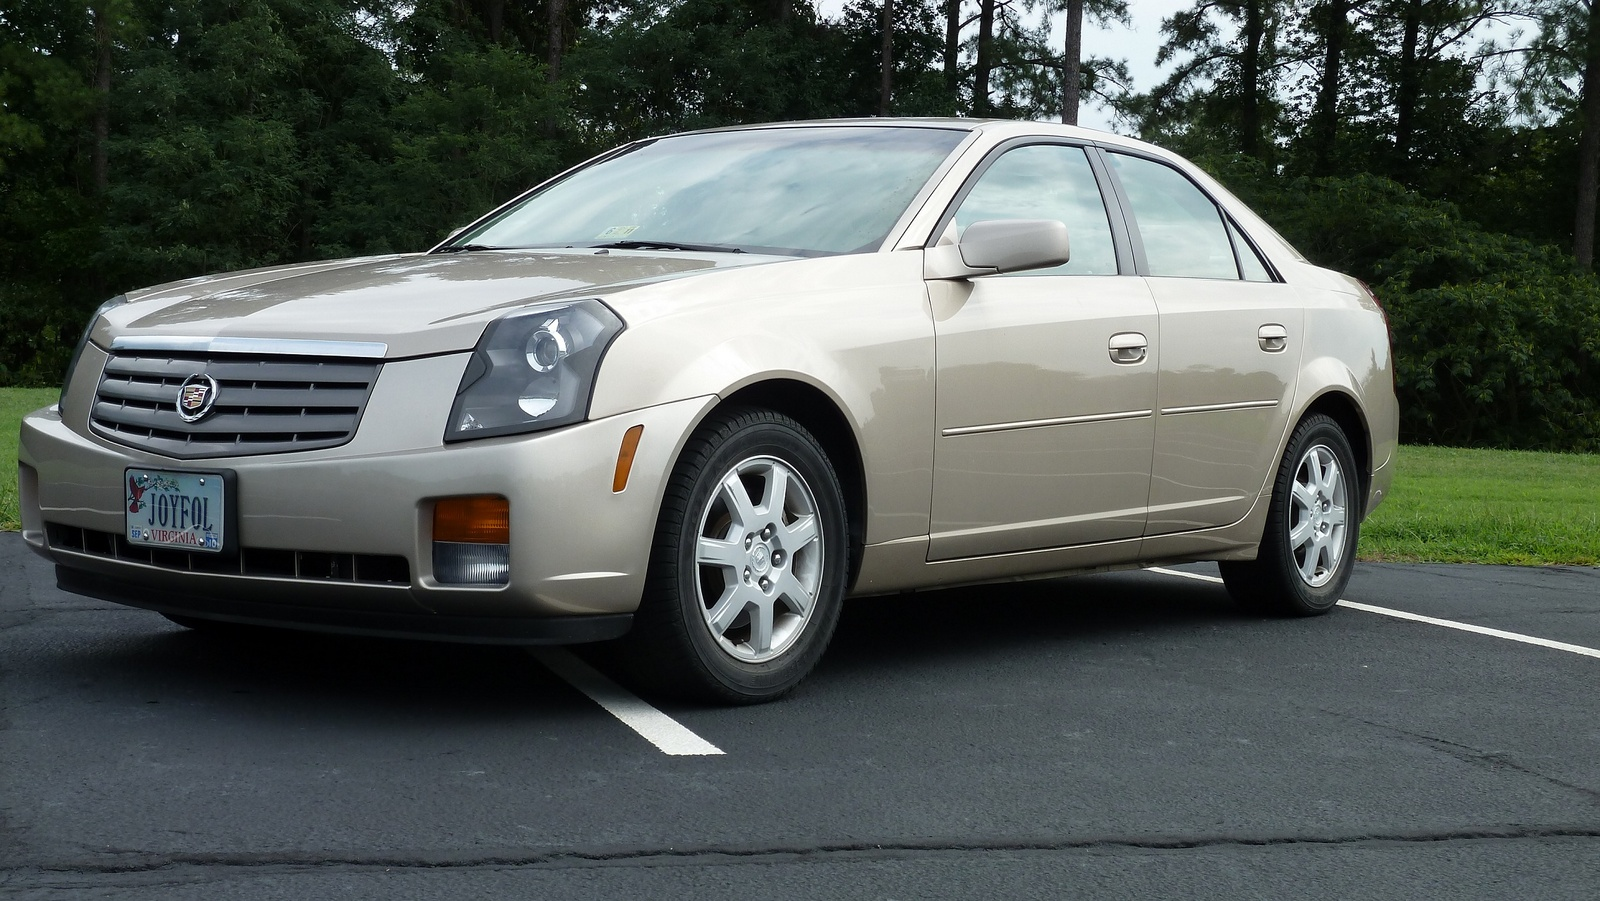 Recalls 2005 Cadillac 2011 Chevy Cts Wiring Diagram On 3 6l View Garage Jolyjo54 Owns This